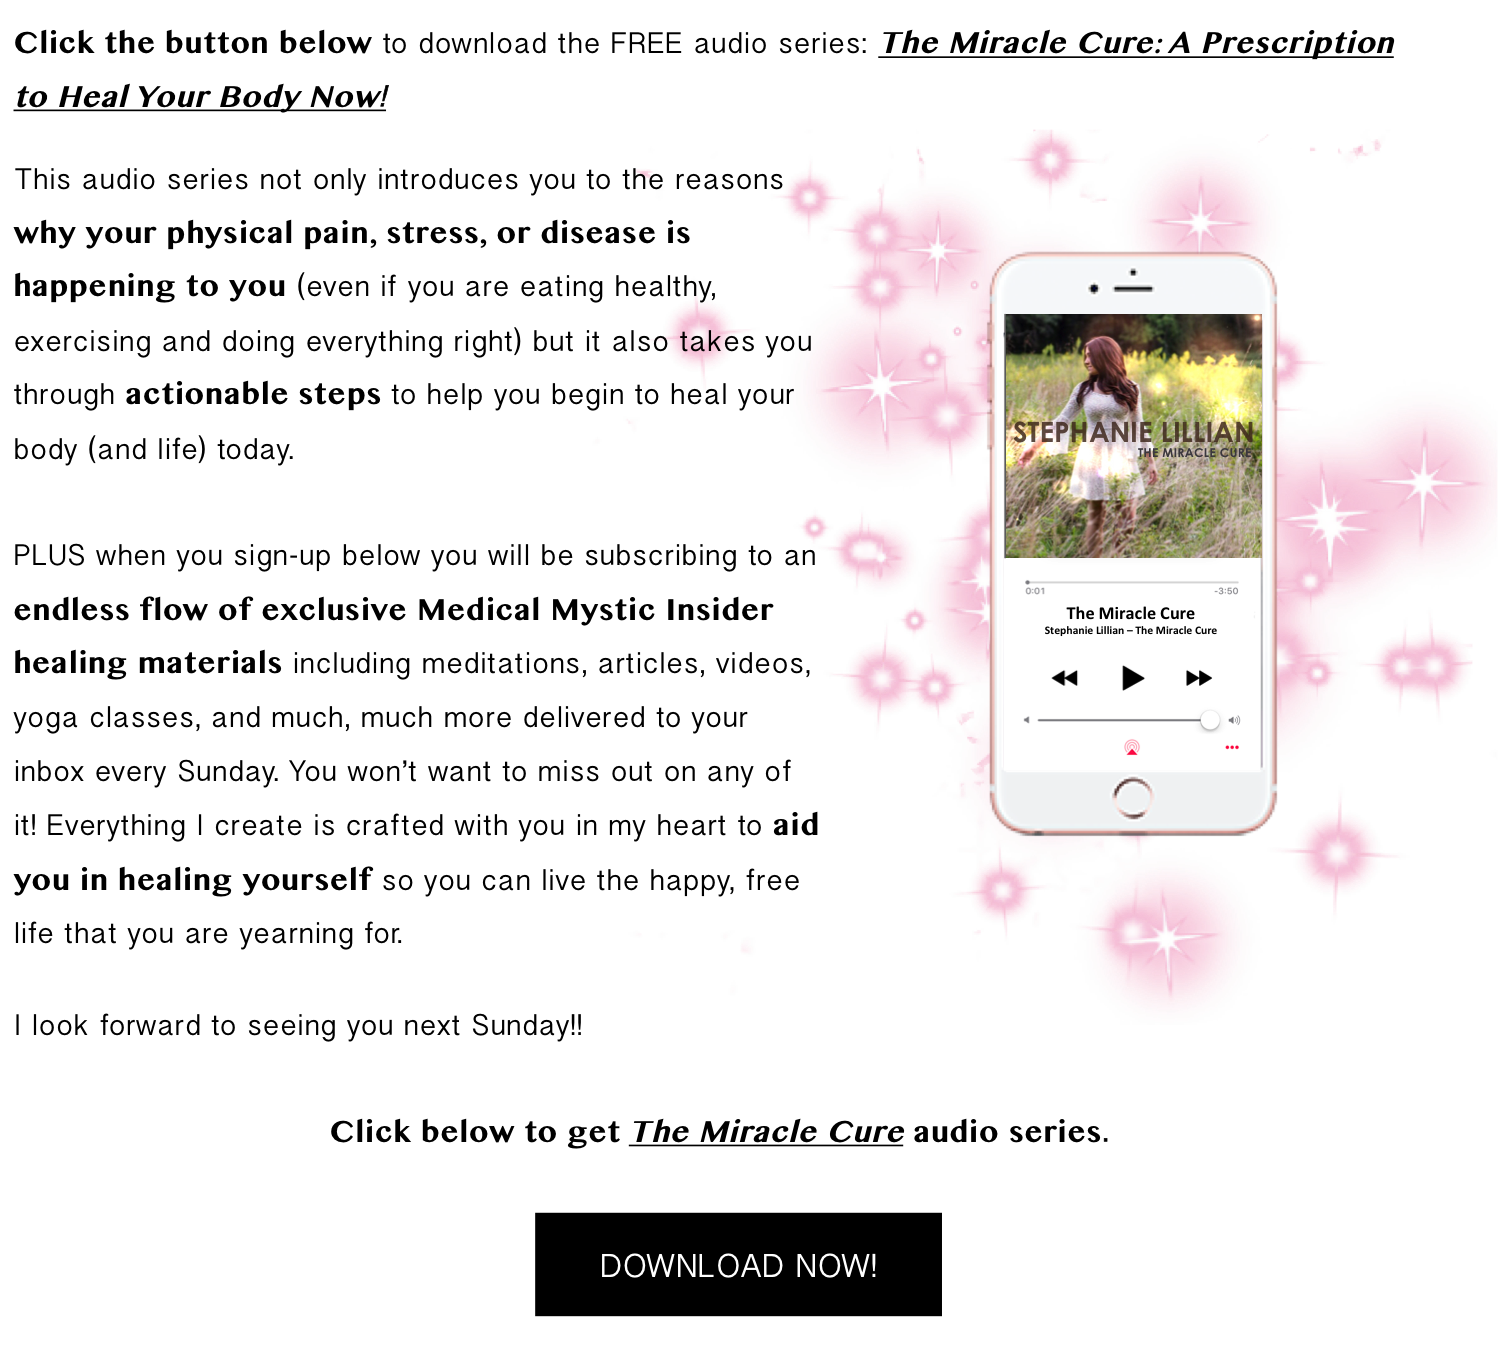 The Miracle Cure Audio Series